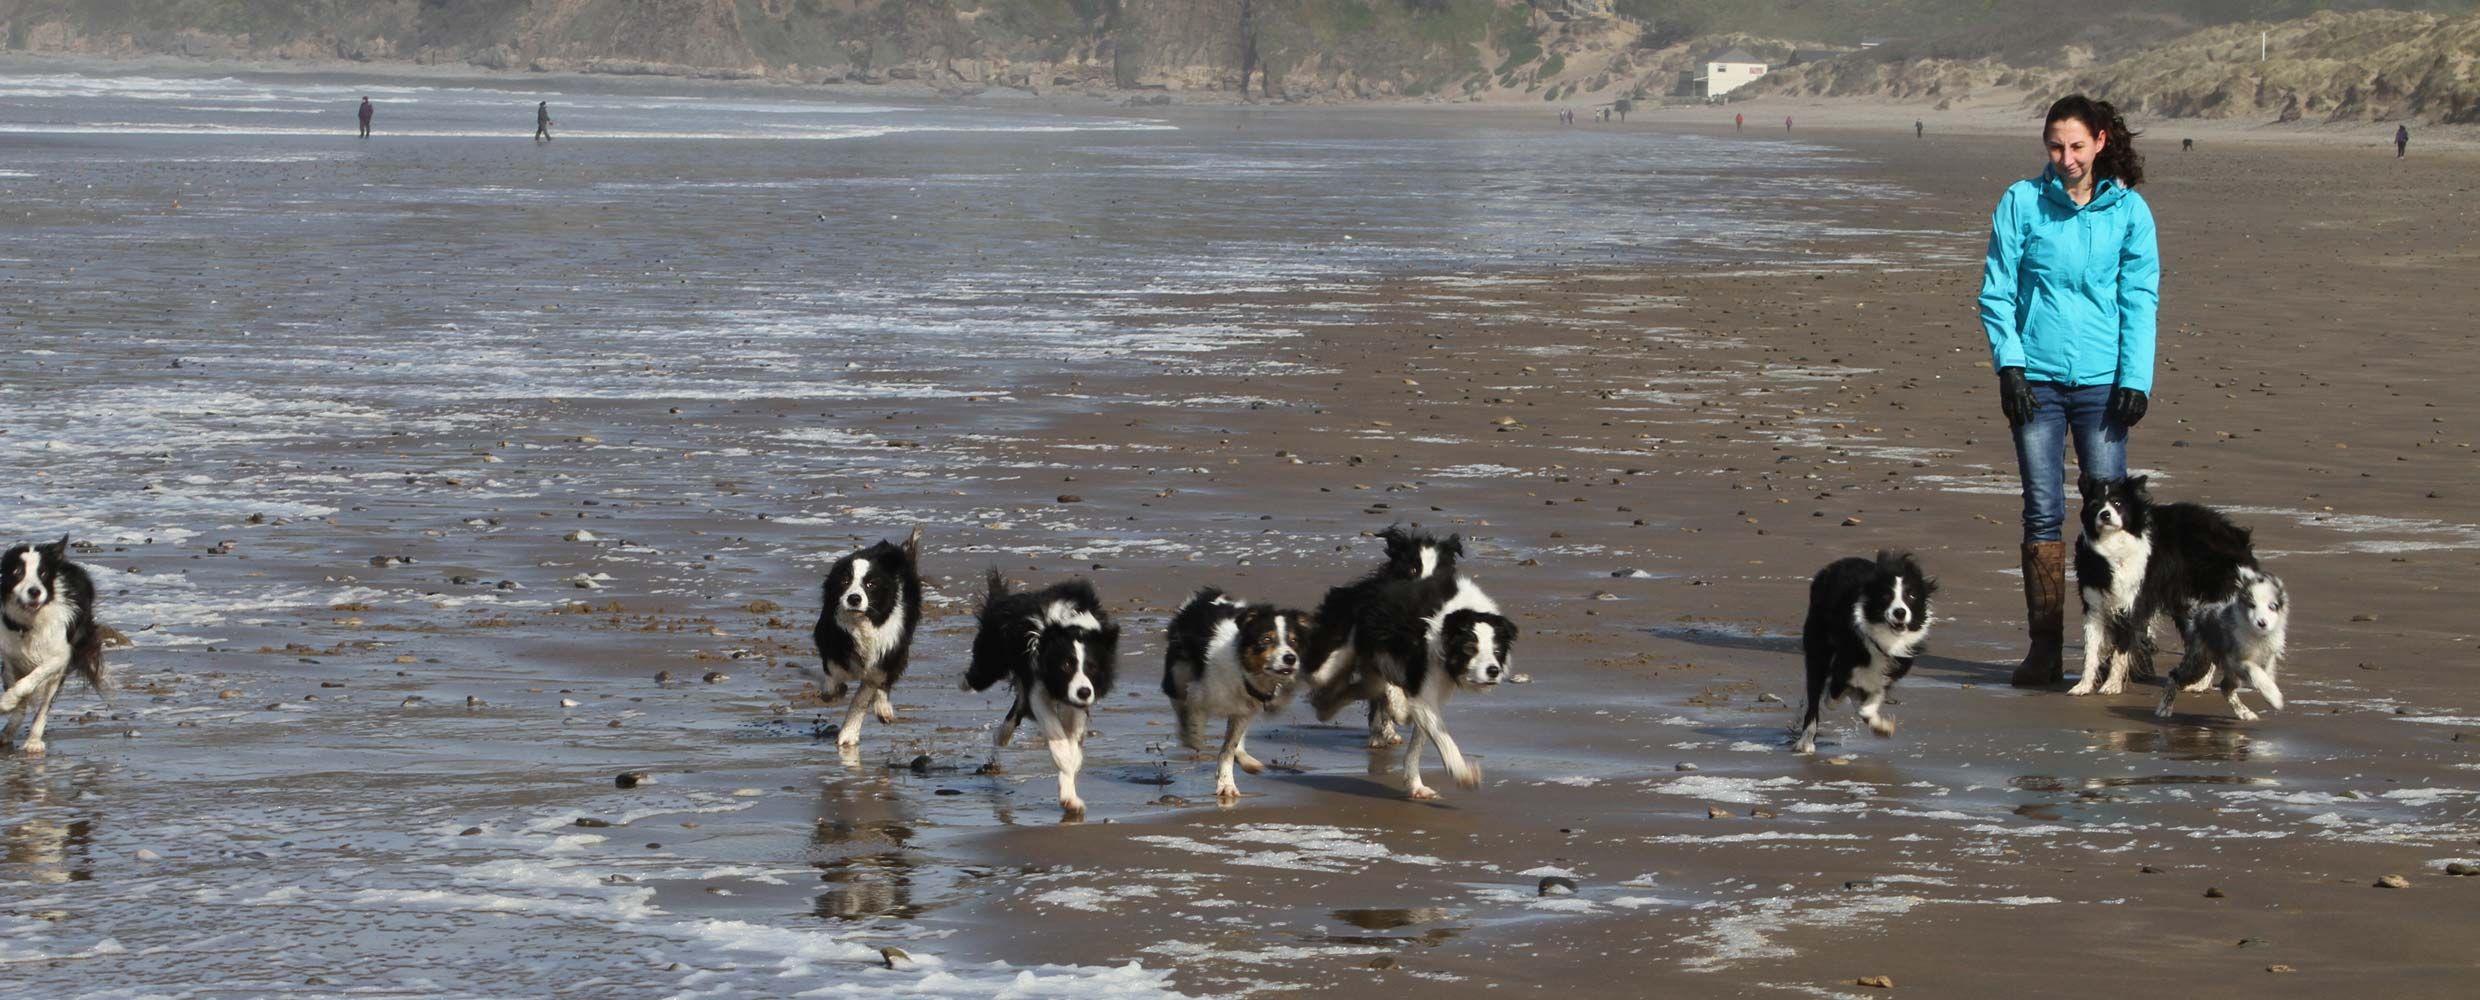 Alison Roets and her Border Collies on the beach in Saunton, Devon